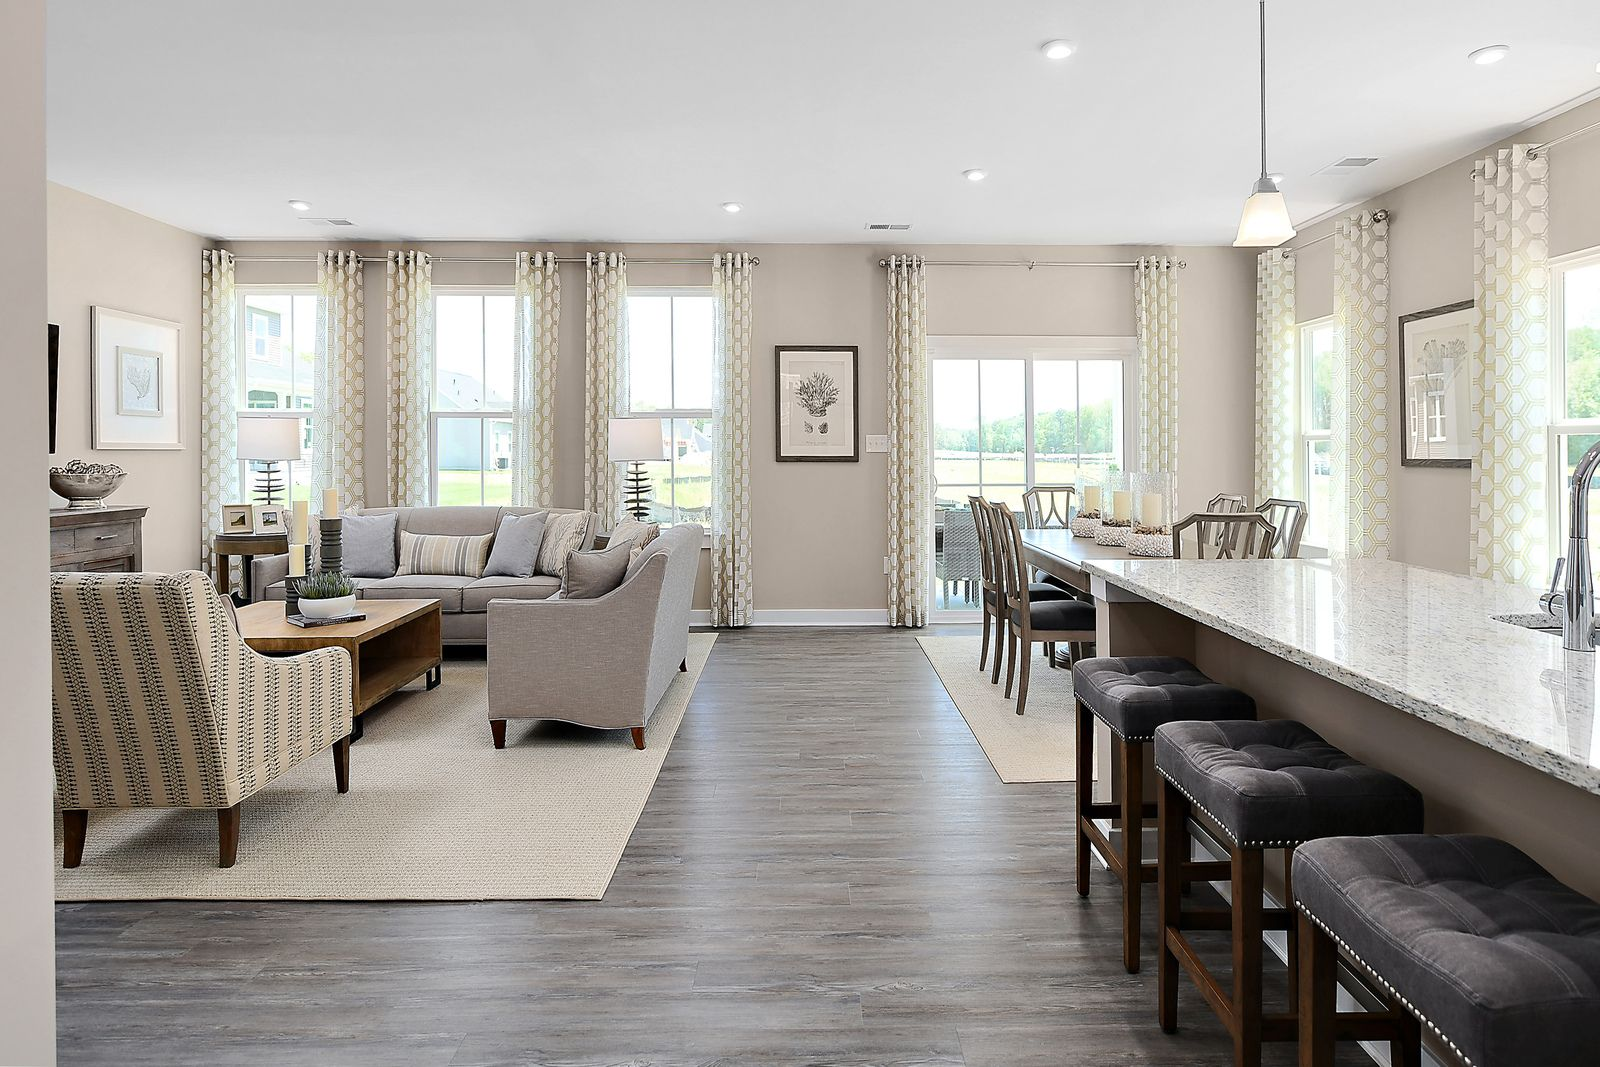 Living Area featured in the Ashbrooke By Ryan Homes in Sussex, DE